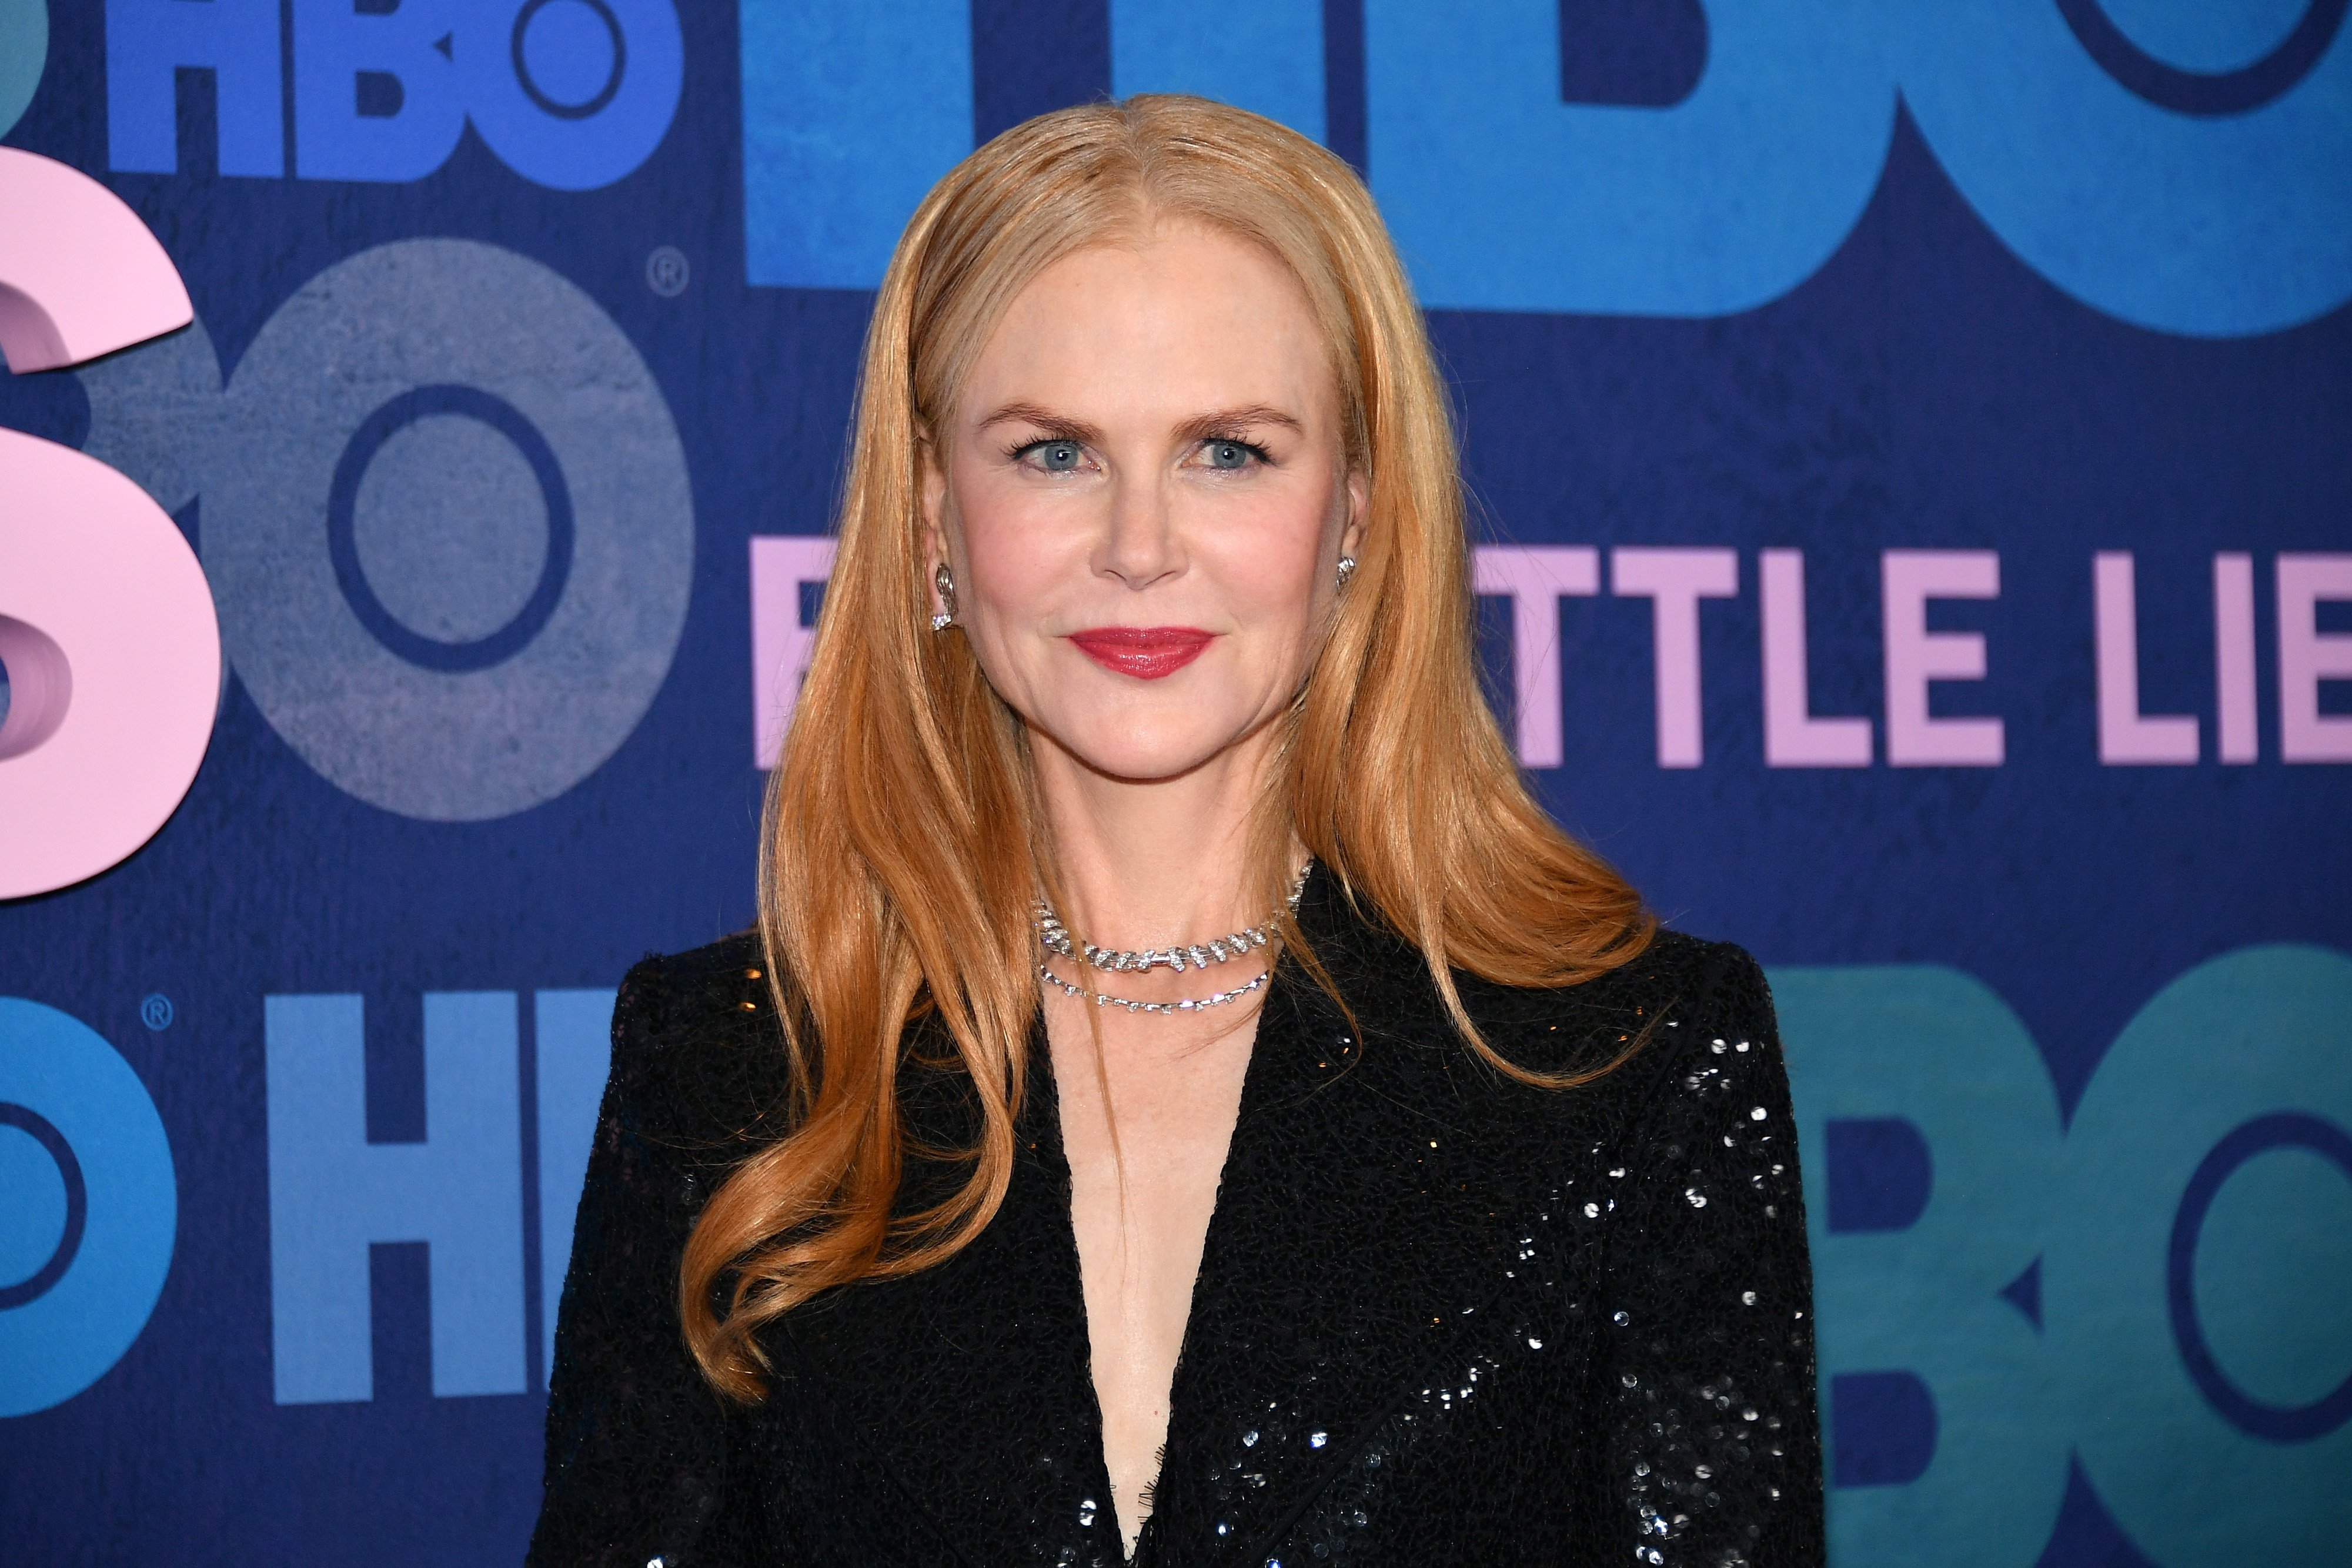 """Nicole Kidman, actress and star on HBO's """"Big Little Lies"""" 